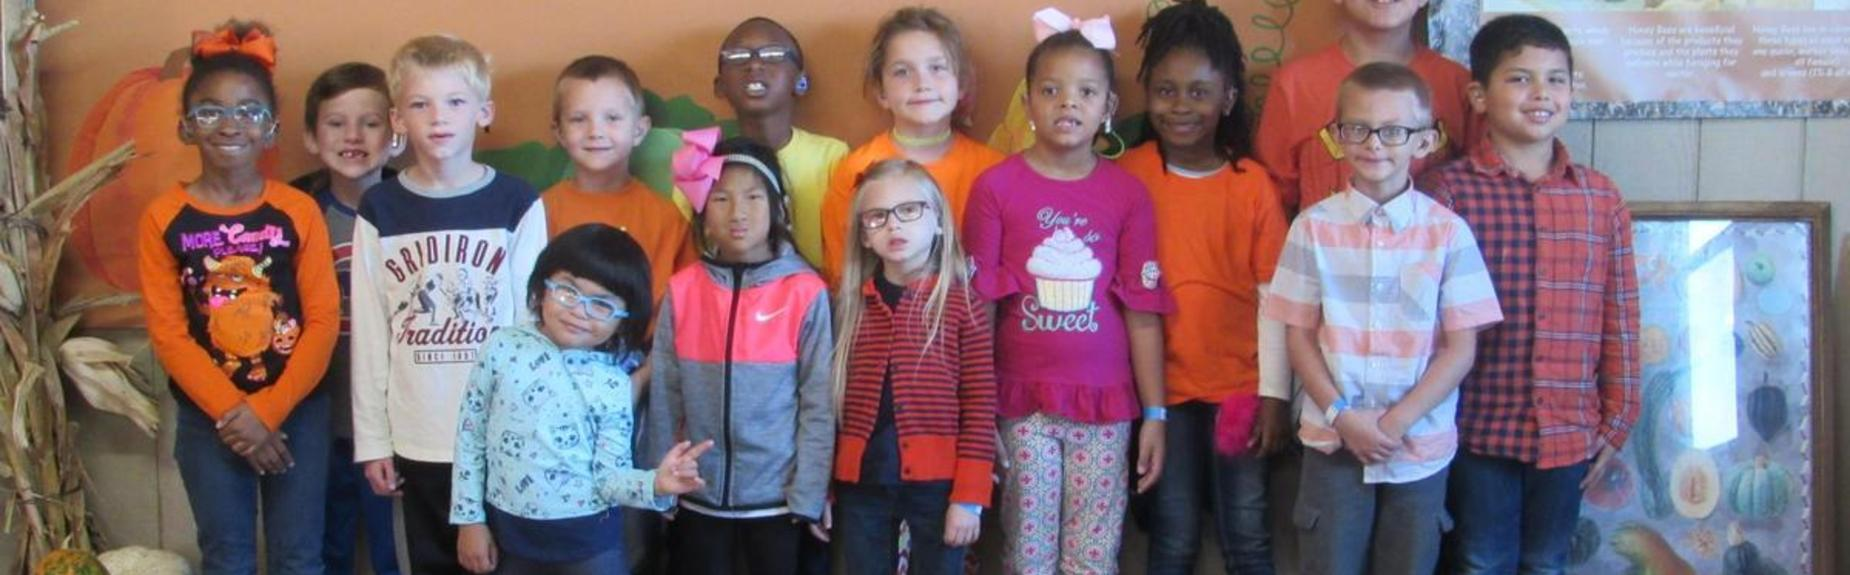 WTSD Students Stand Against Bullying